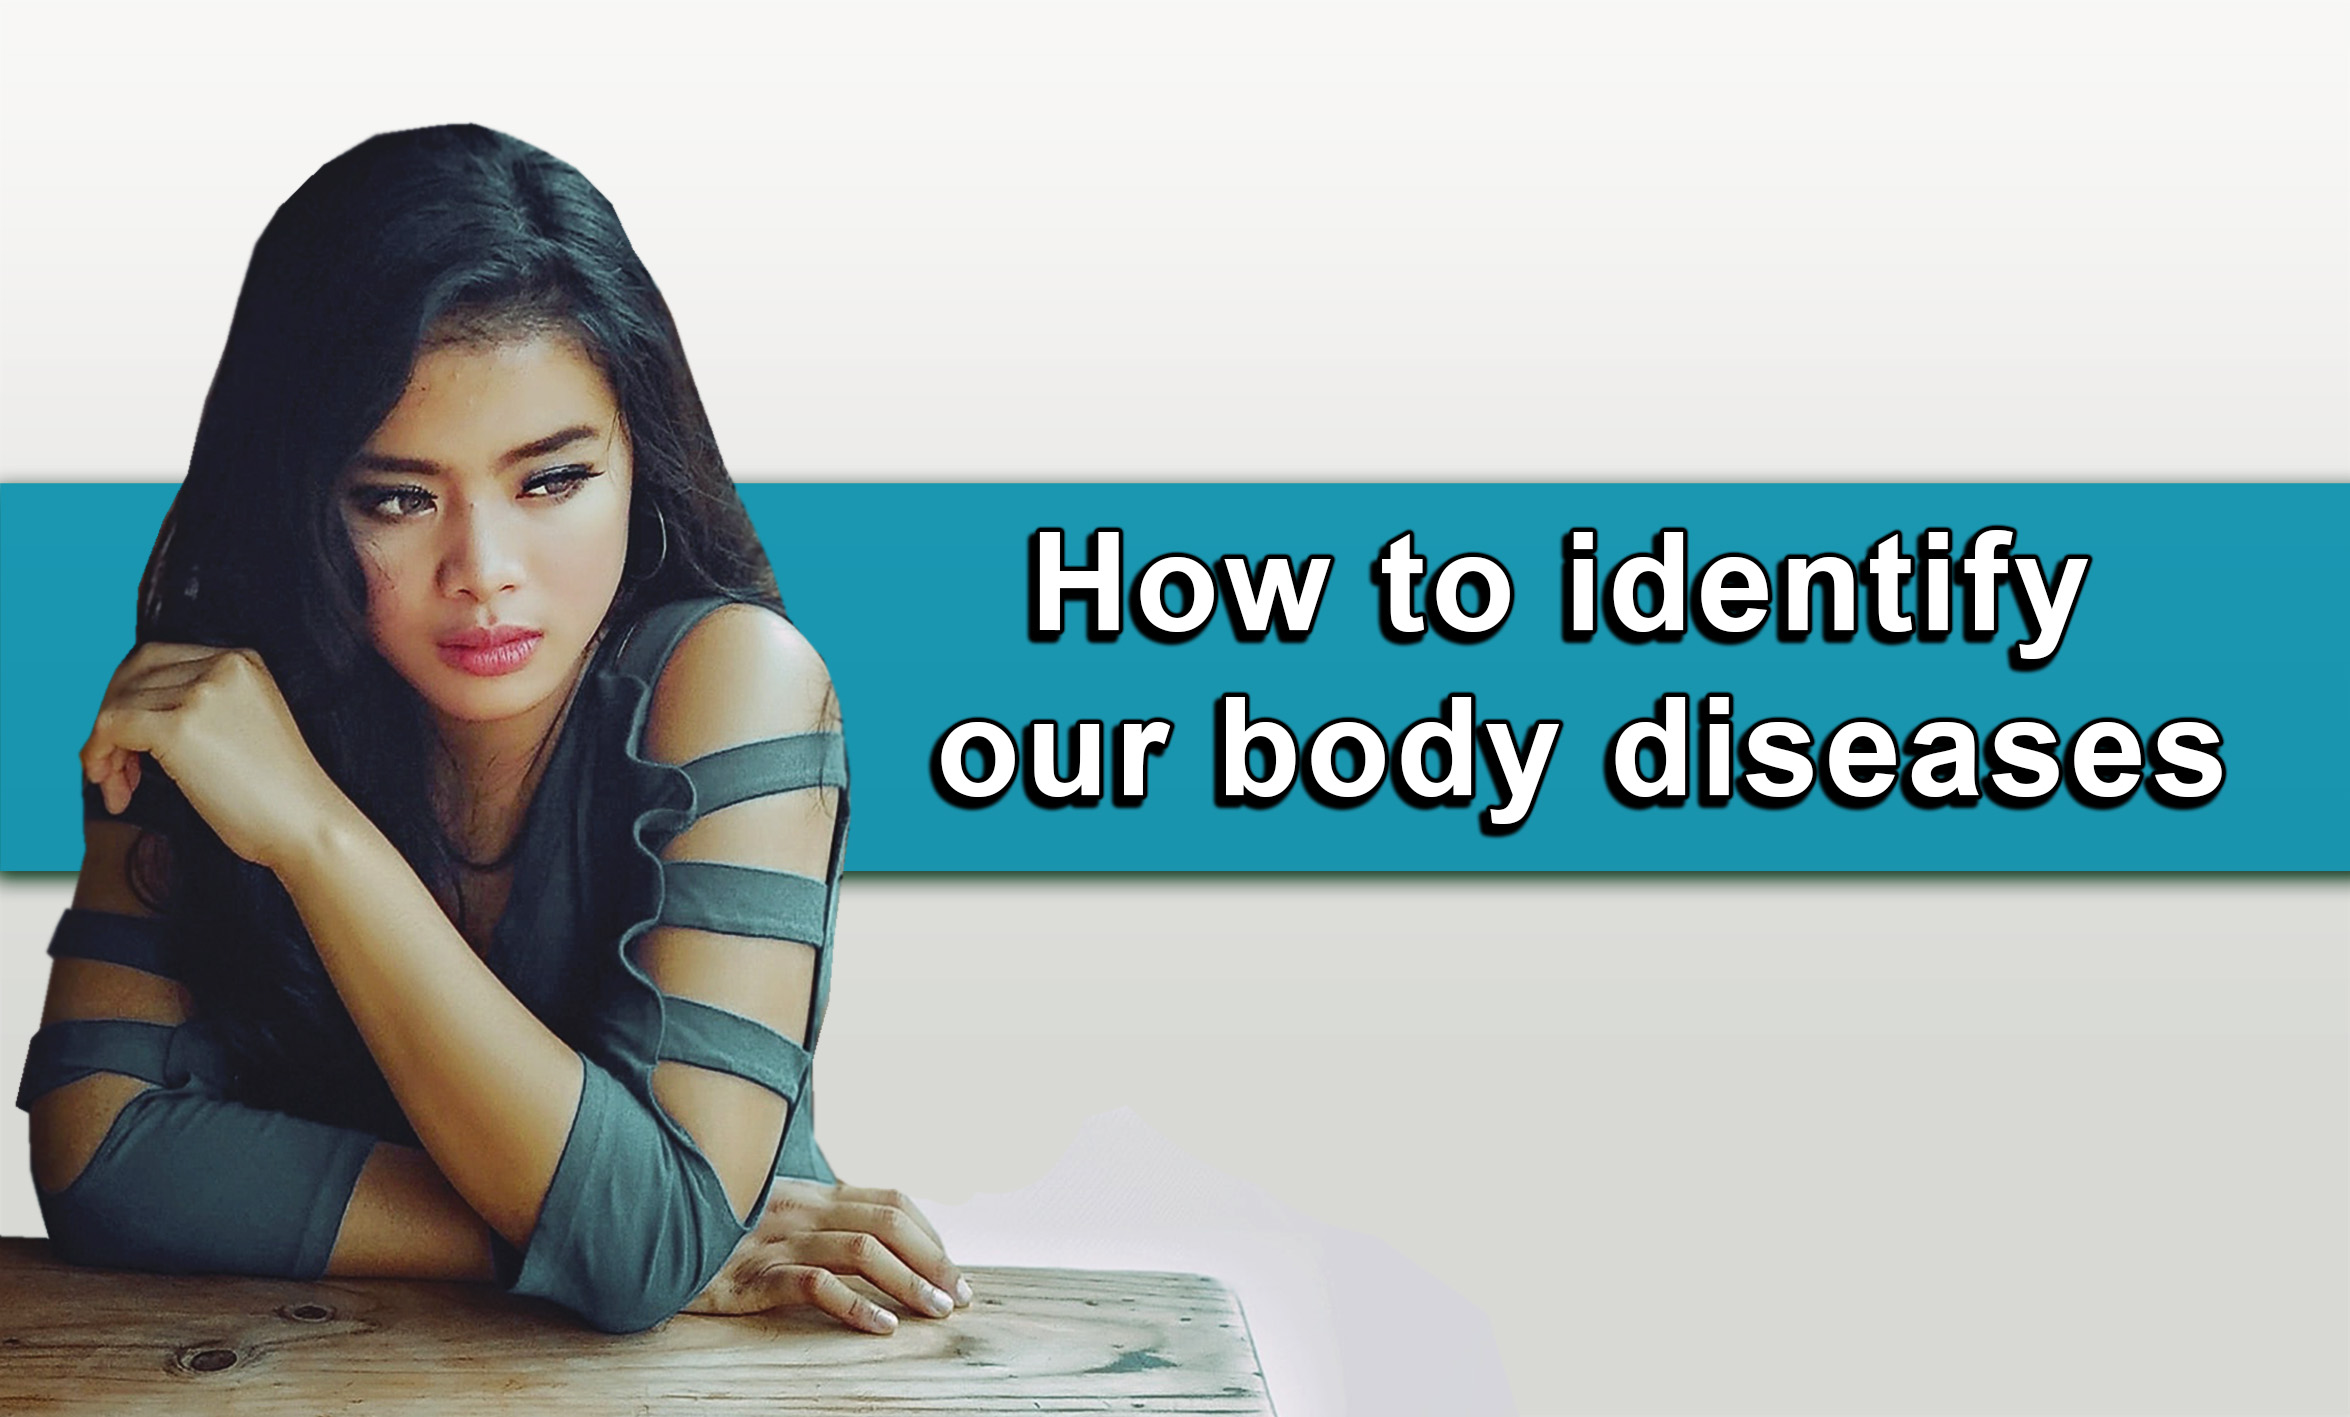 How to identify our body diseases